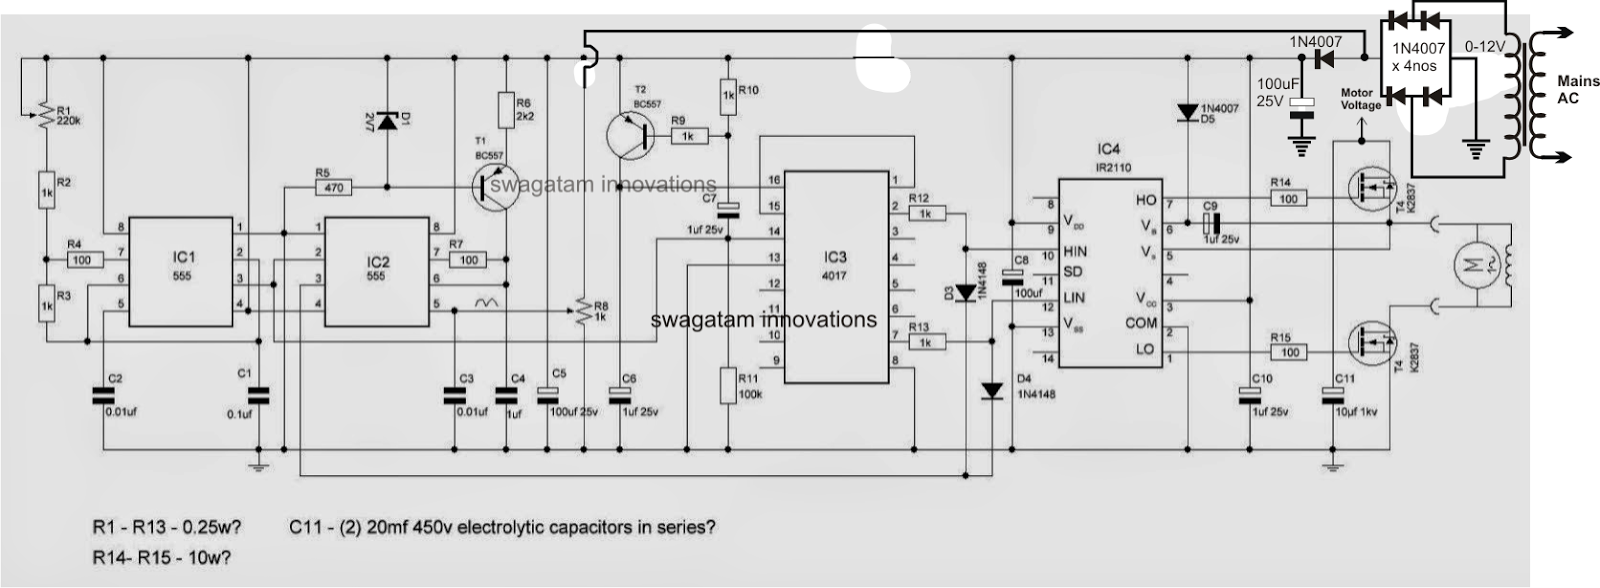 The post explains a simple variable frequency drive or VFD